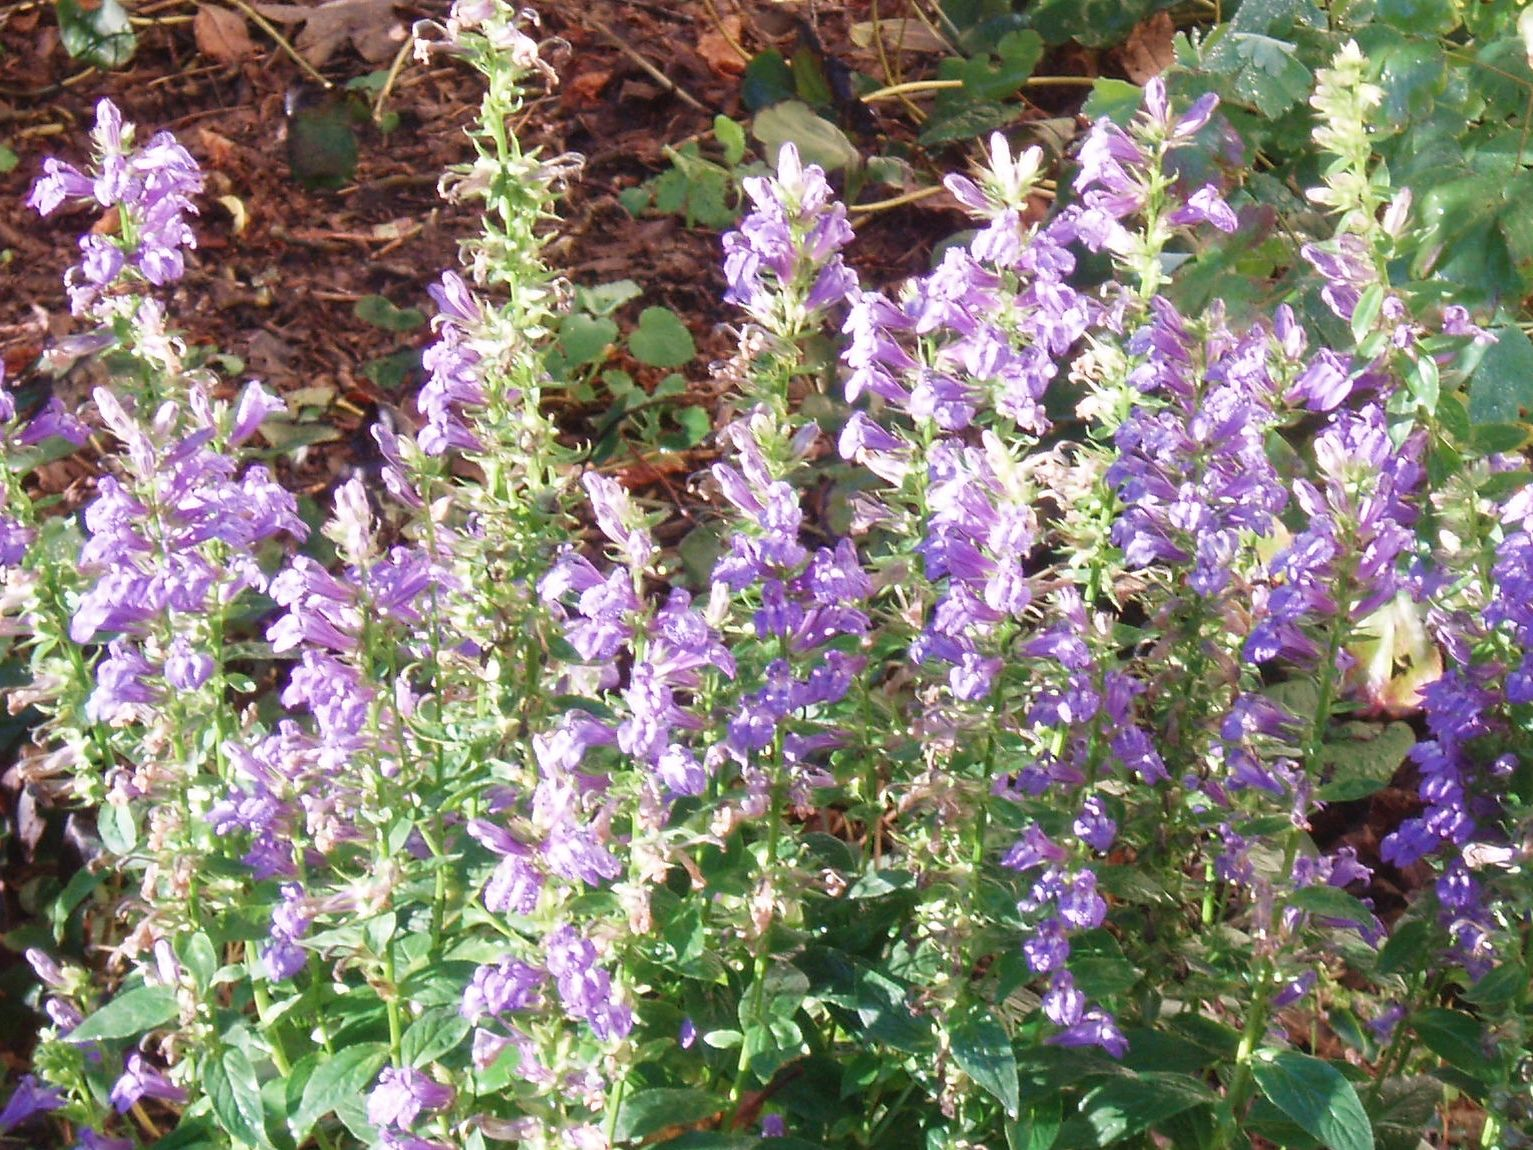 "{""blocks"":[{""key"":""cctku"",""text"":""Lobelia siphilitica Great Blue Lobelia Blue Cardinal Flower - potted plants email john@easywildflowers.com"",""type"":""unstyled"",""depth"":0,""inlineStyleRanges"":[],""entityRanges"":[],""data"":{}}],""entityMap"":{}}"